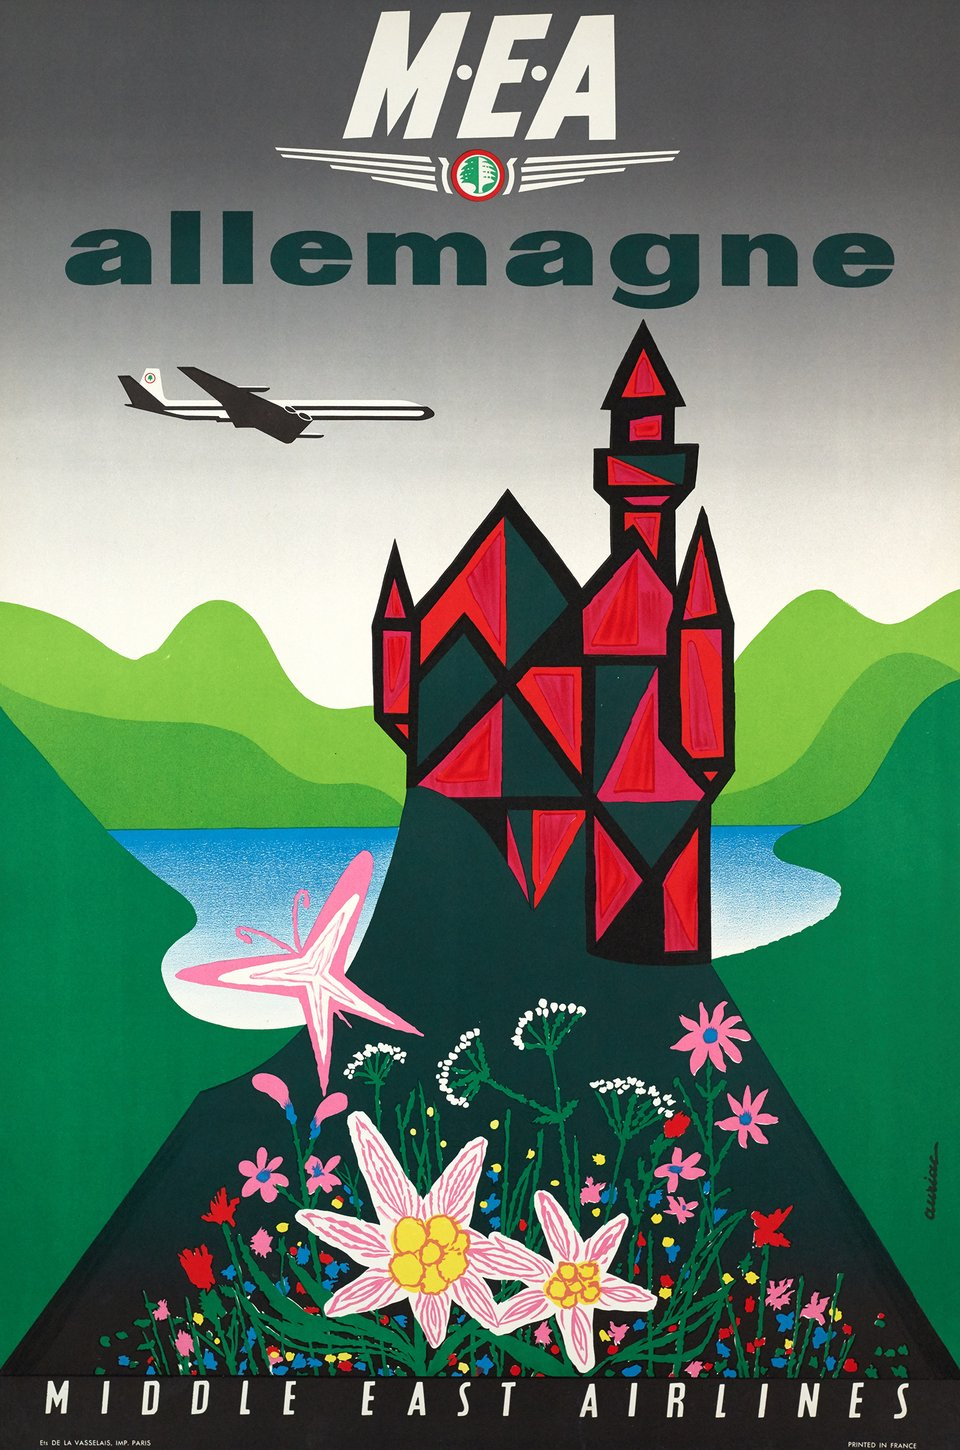 MEA Allemagne, Middle East Airlines – Vintage poster – Jacques AURIAC – 1961